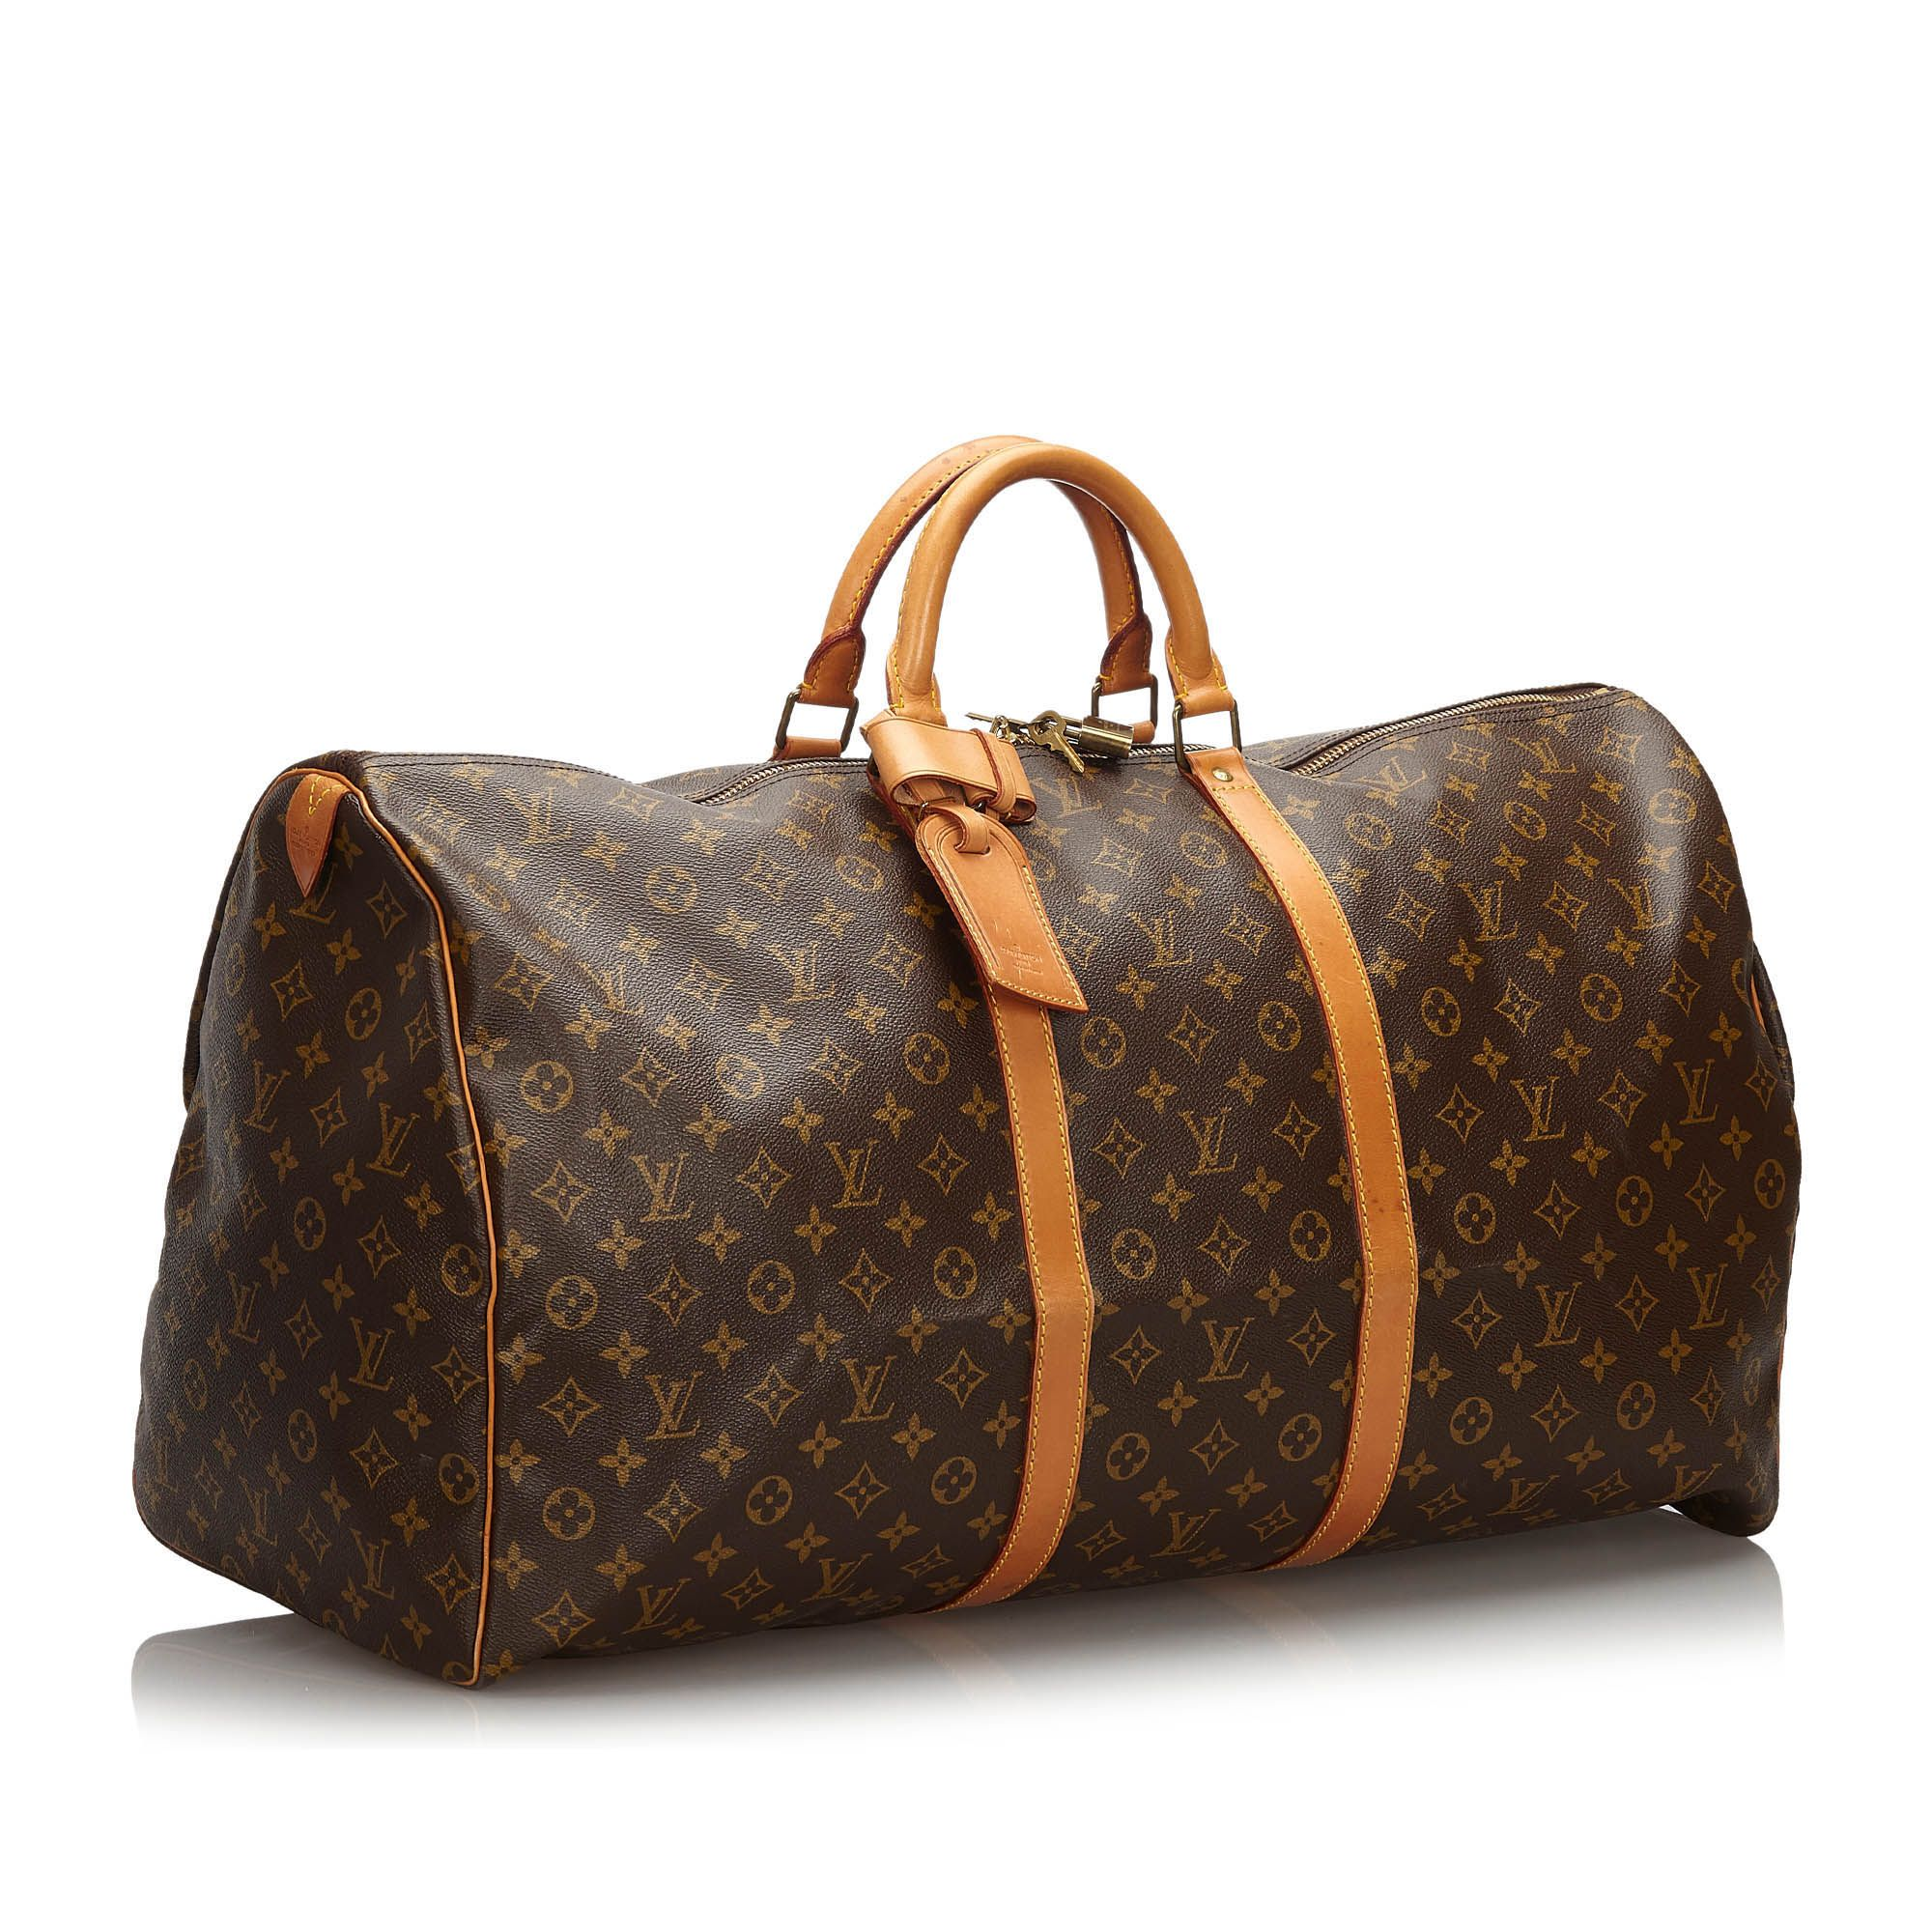 Vintage Louis Vuitton Monogram Keepall 60 Brown